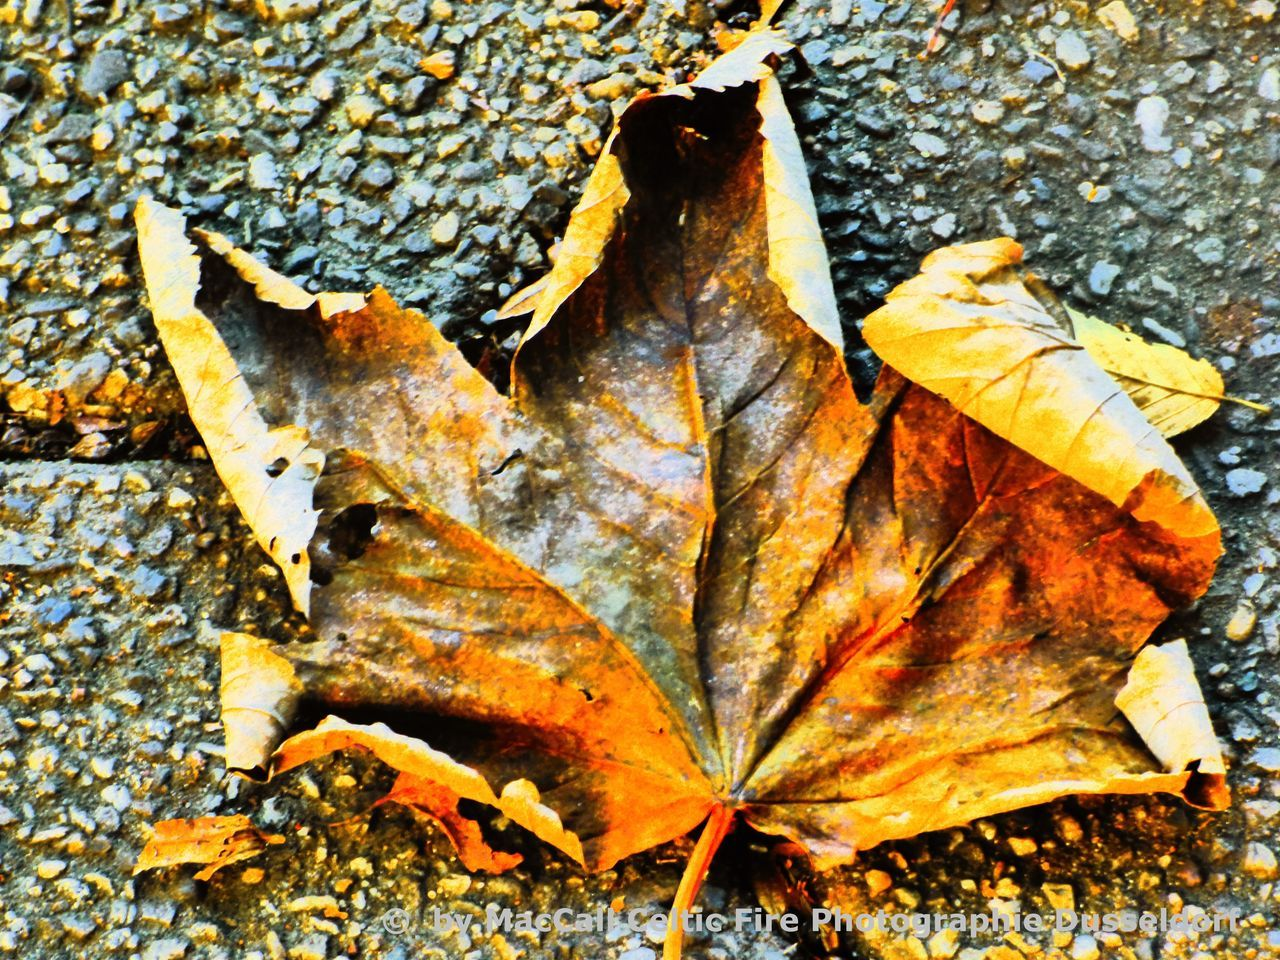 autumn, leaf, change, dry, leaves, fallen, nature, outdoors, day, maple, maple leaf, close-up, no people, fragility, beauty in nature